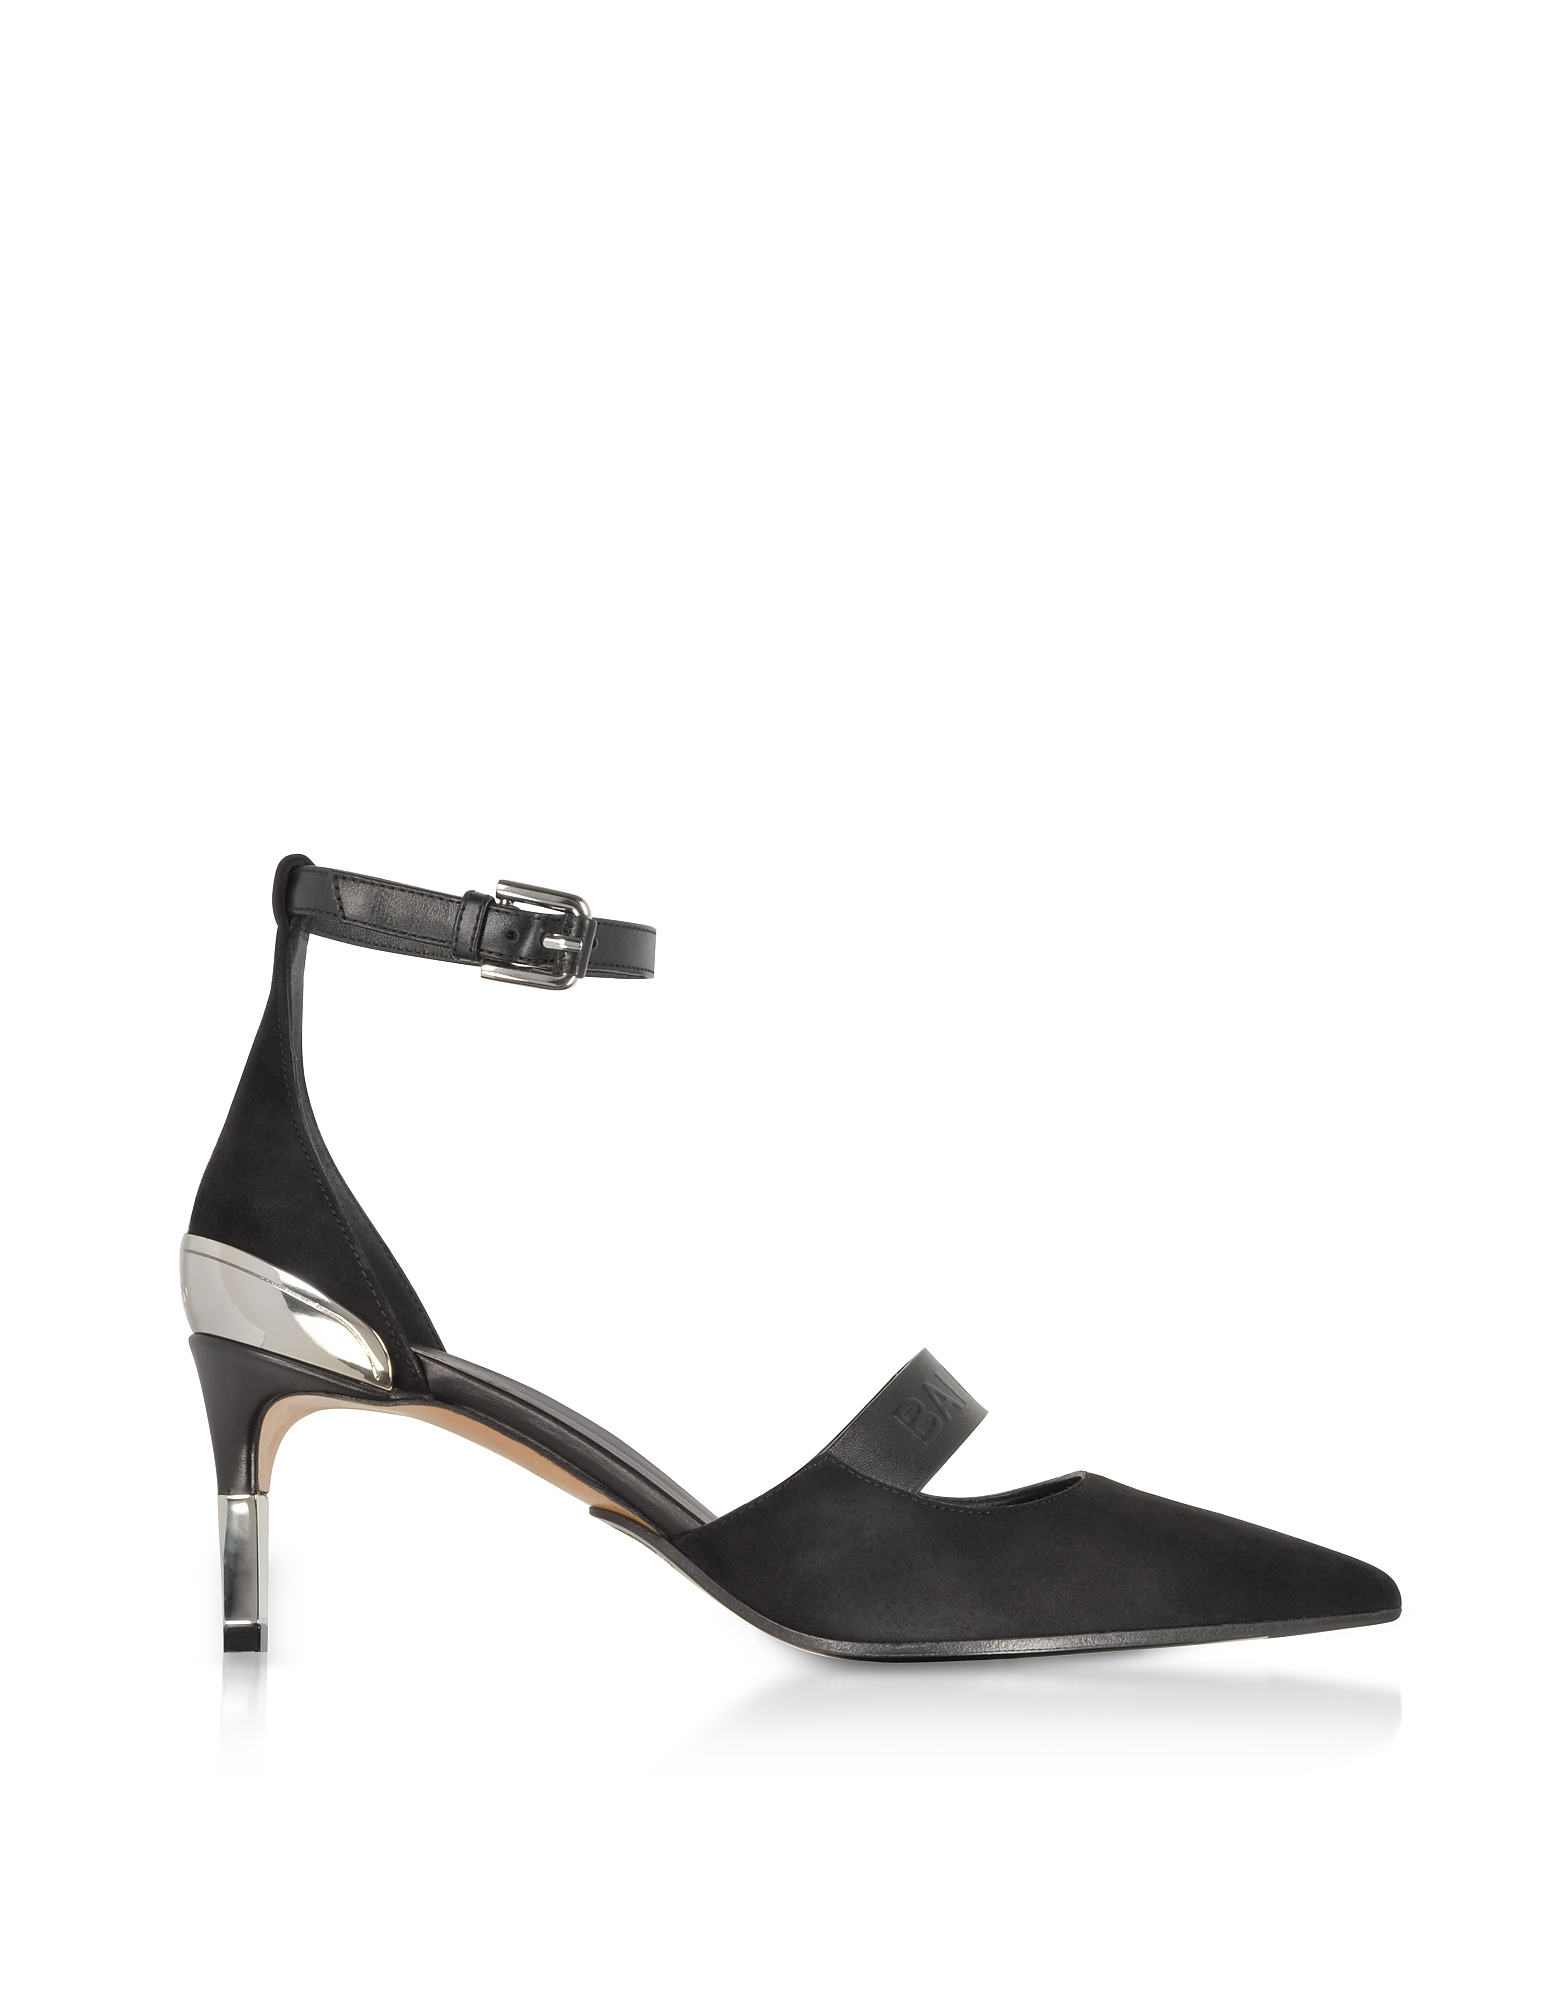 Balmain Shoes, Black Suede Mid-Heel Chance Pumps